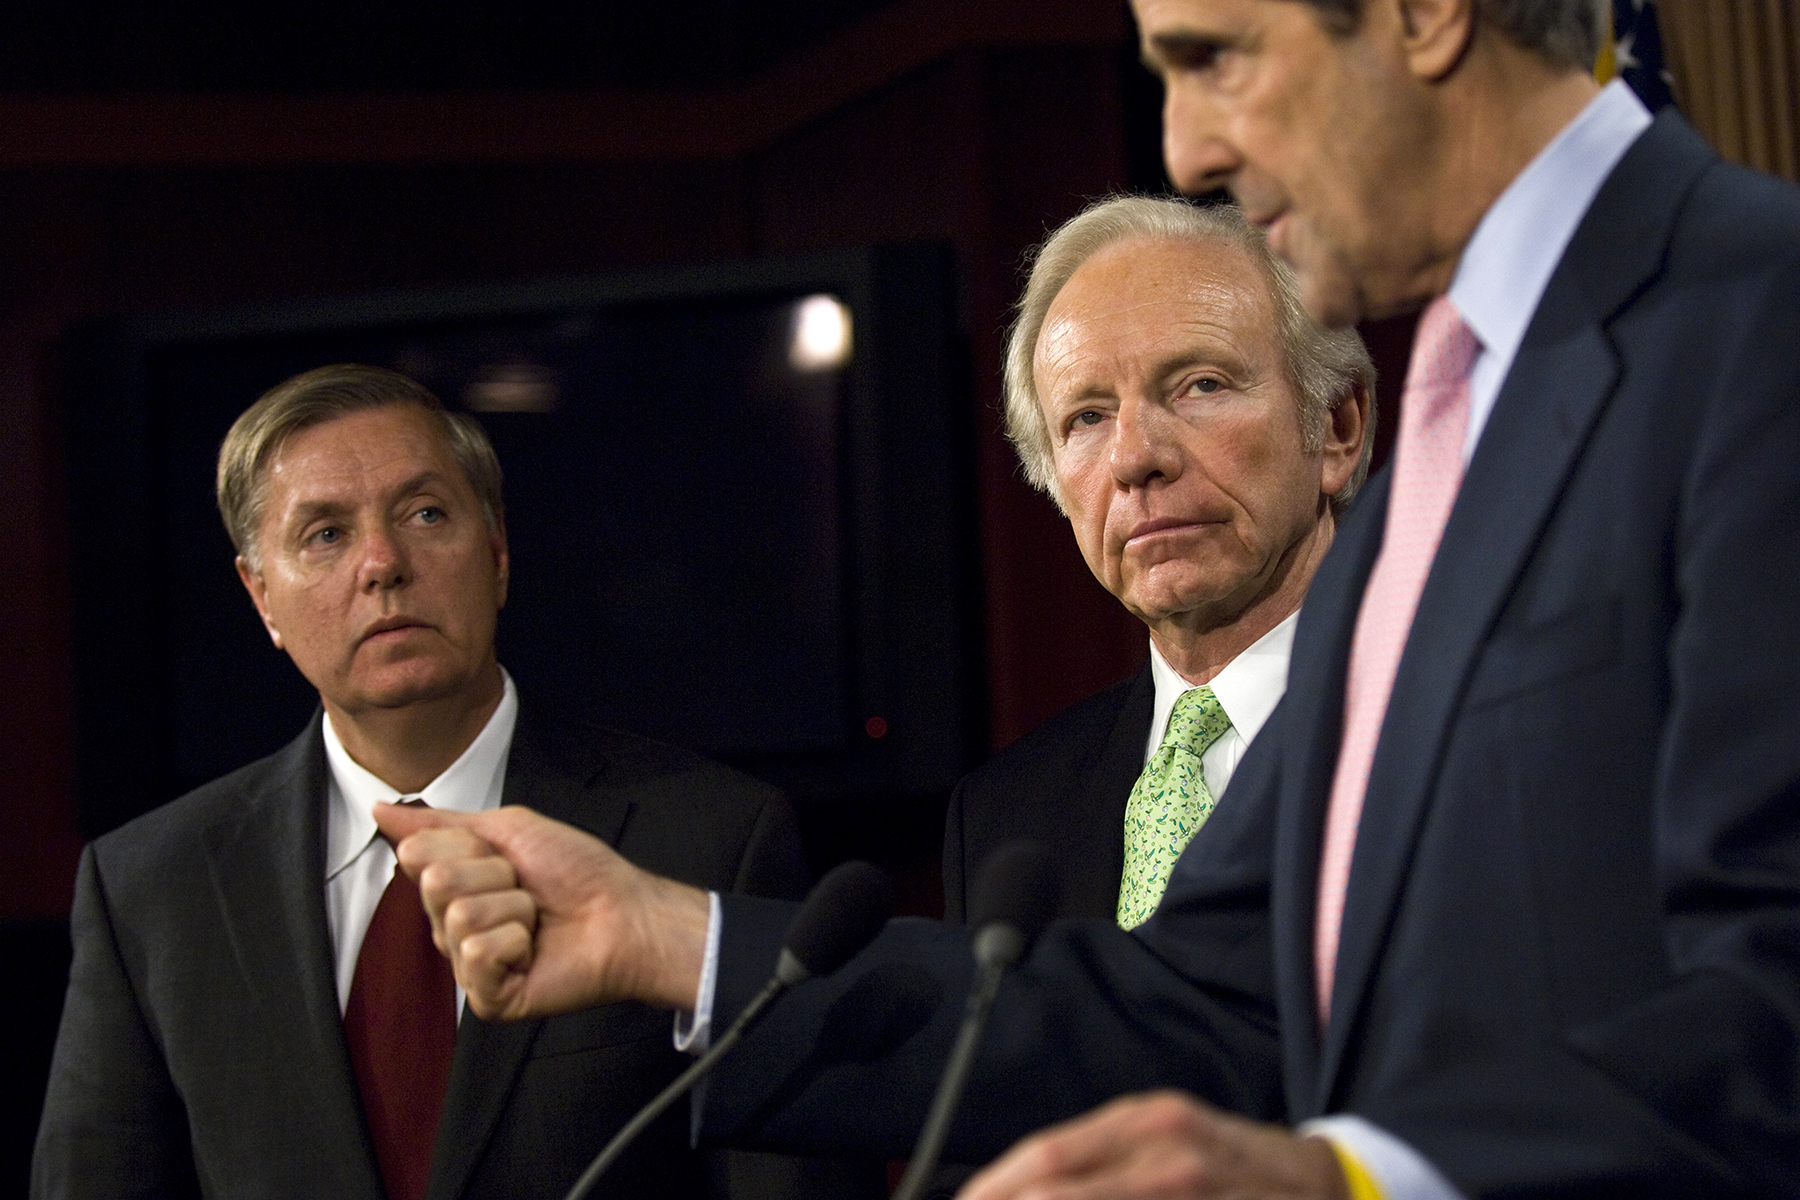 WASHINGTON, DC - DECEMBER 10: Sen. Lindsey Graham, R-S.C., Sen. Joseph I. Lieberman, I-Vt., and Sen. John Kerry, D-Mass., during a news conference on comprehensive climate change and energy independence legislation. (Photo by Scott J. Ferrell/Congressional Quarterly/Getty Images)